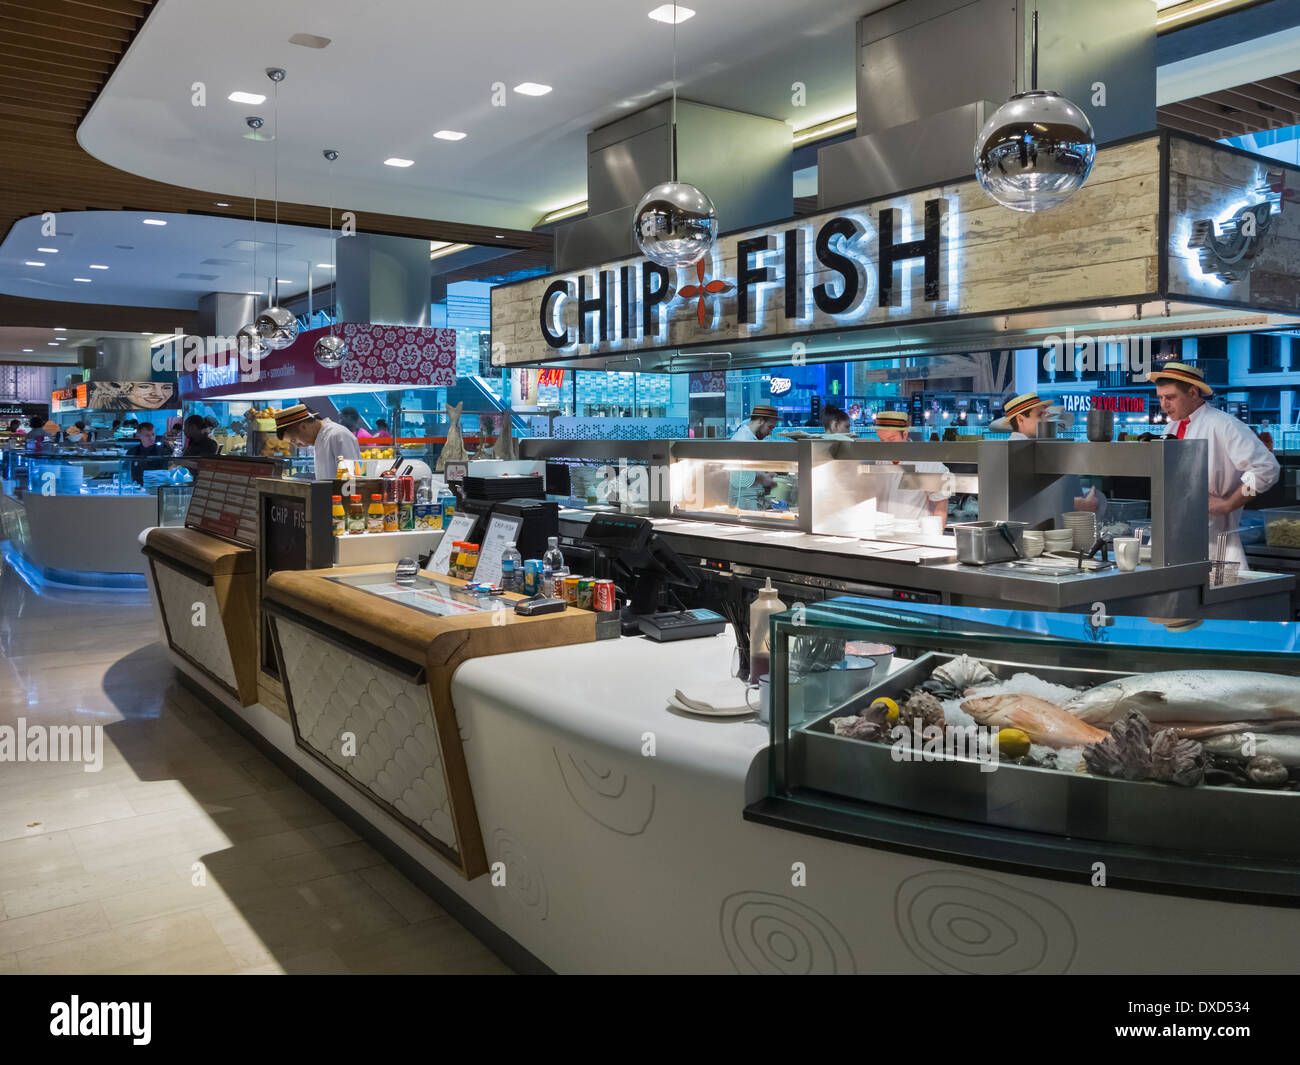 Food Court in Westfield Shopping Centre, West London, England, Uk - Stock Image